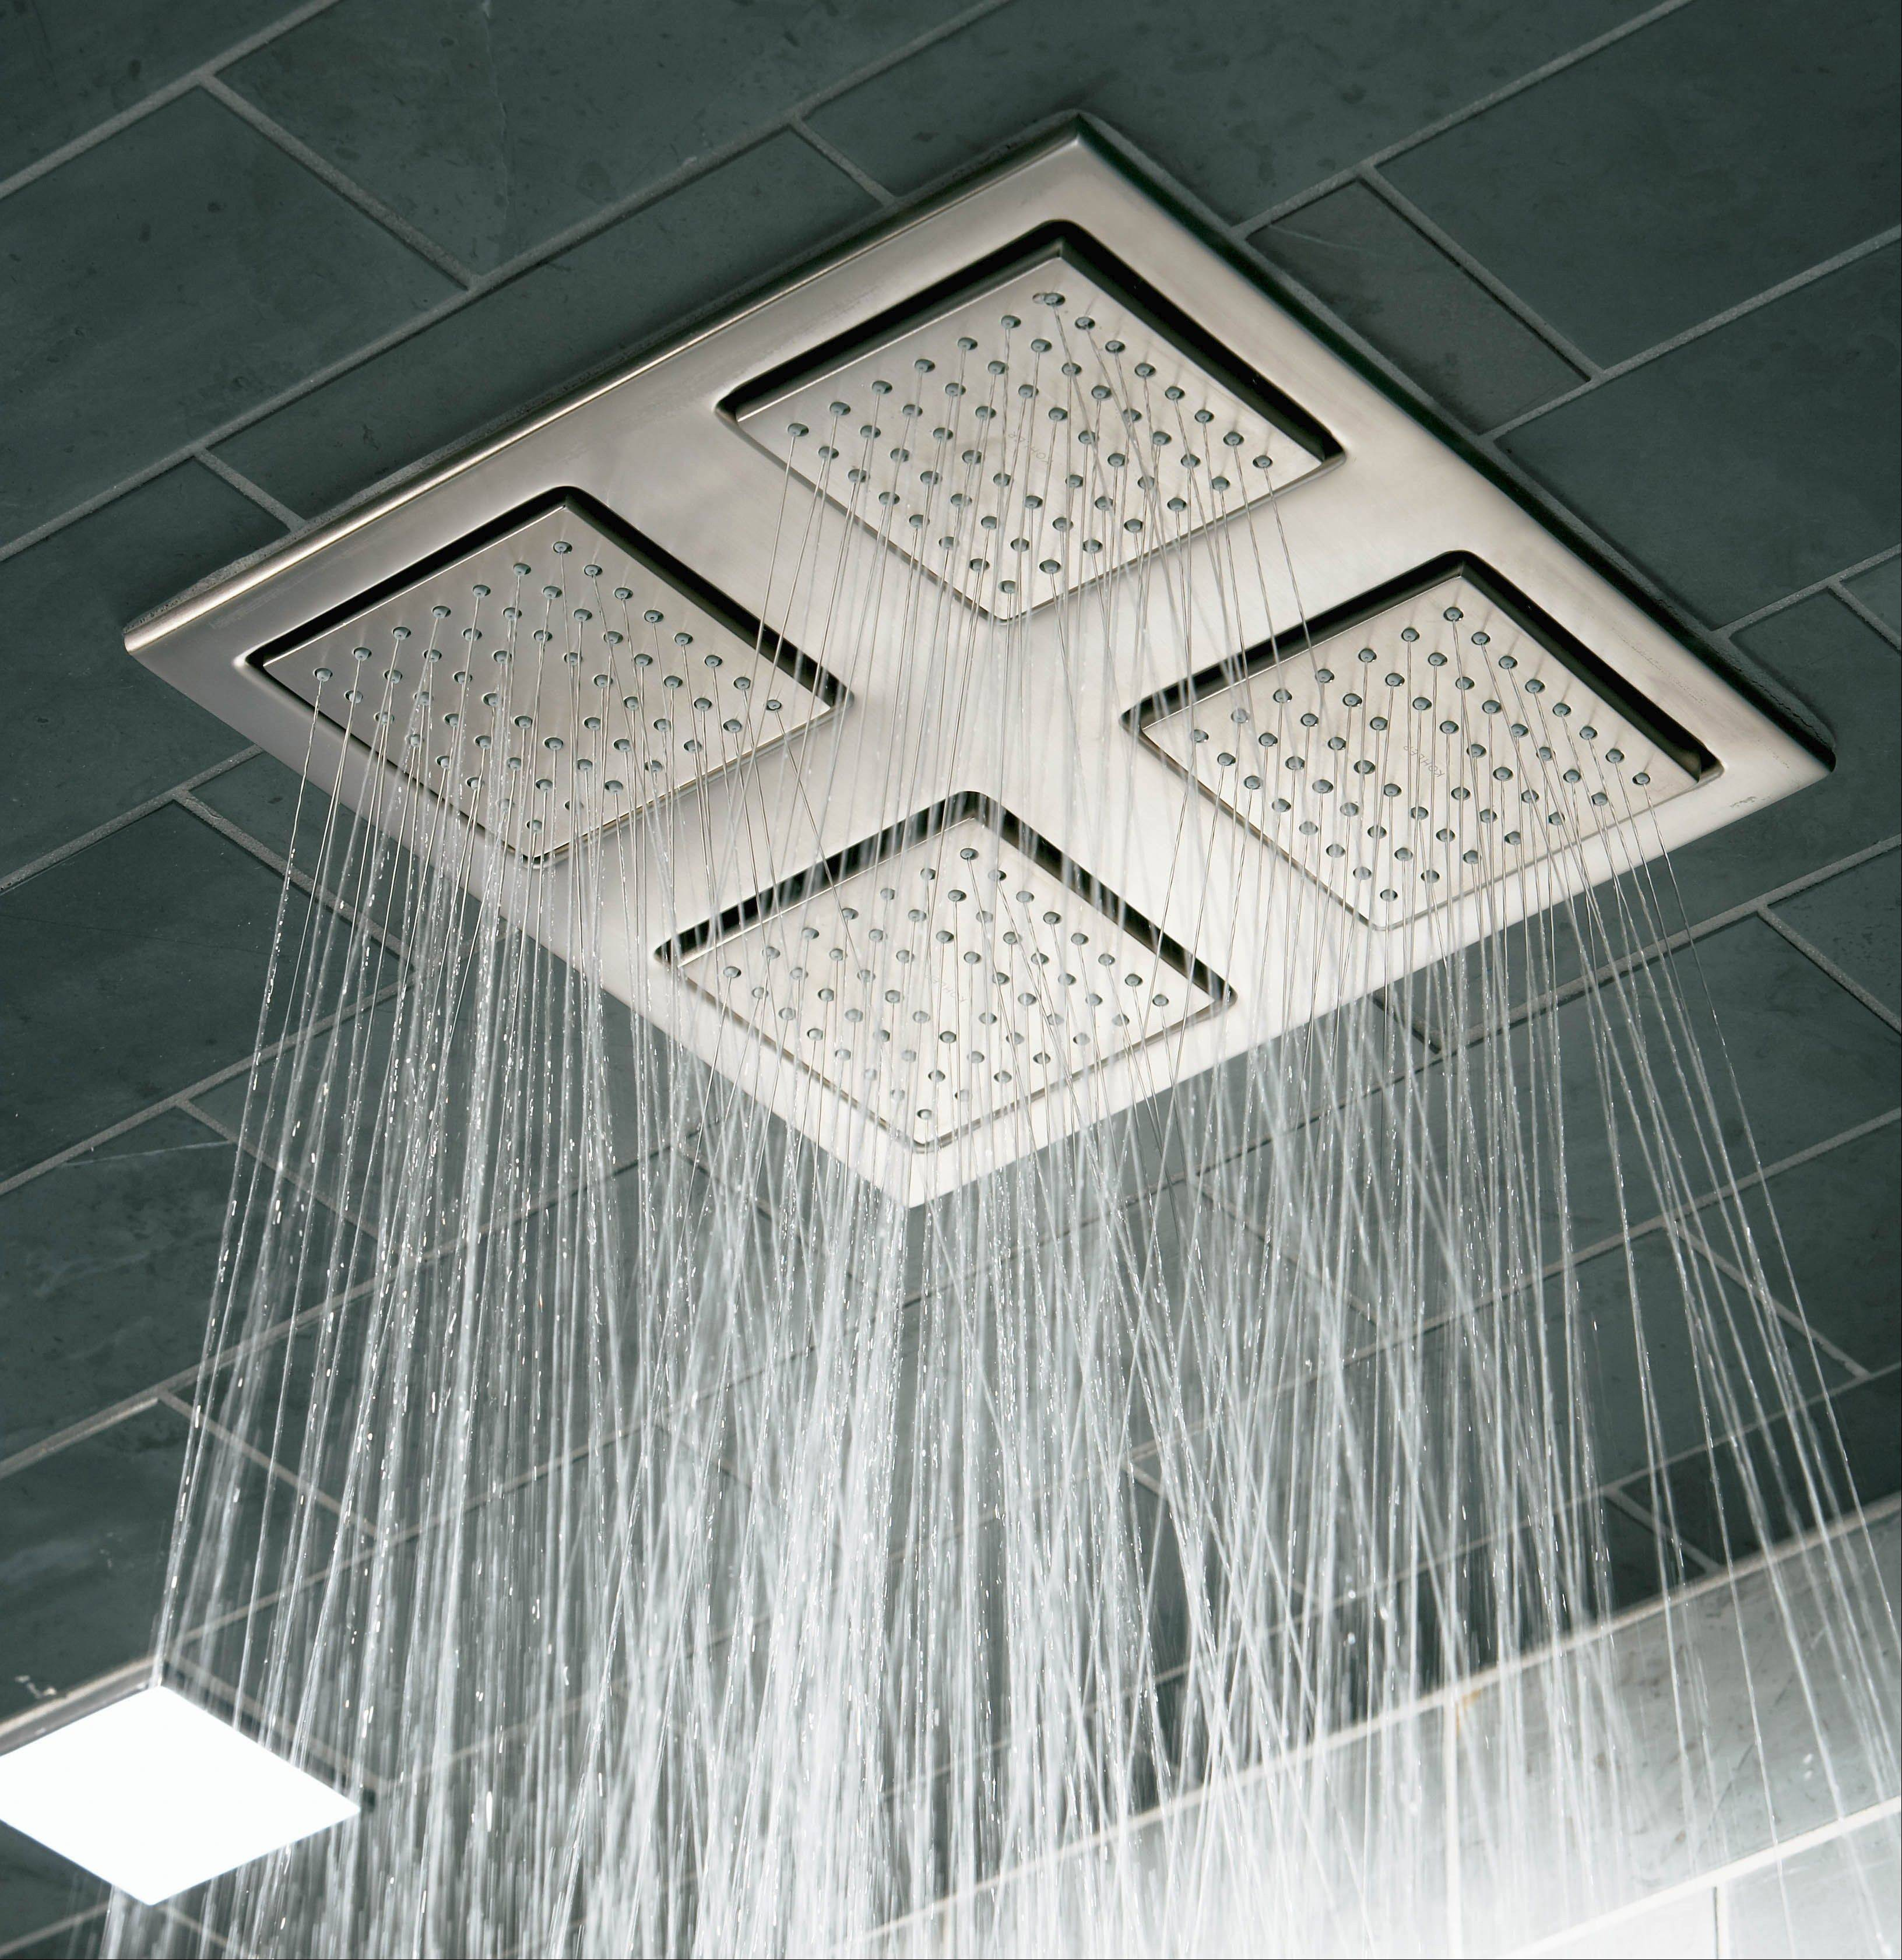 Residential recirculating systems can get hot water quickly to your shower.